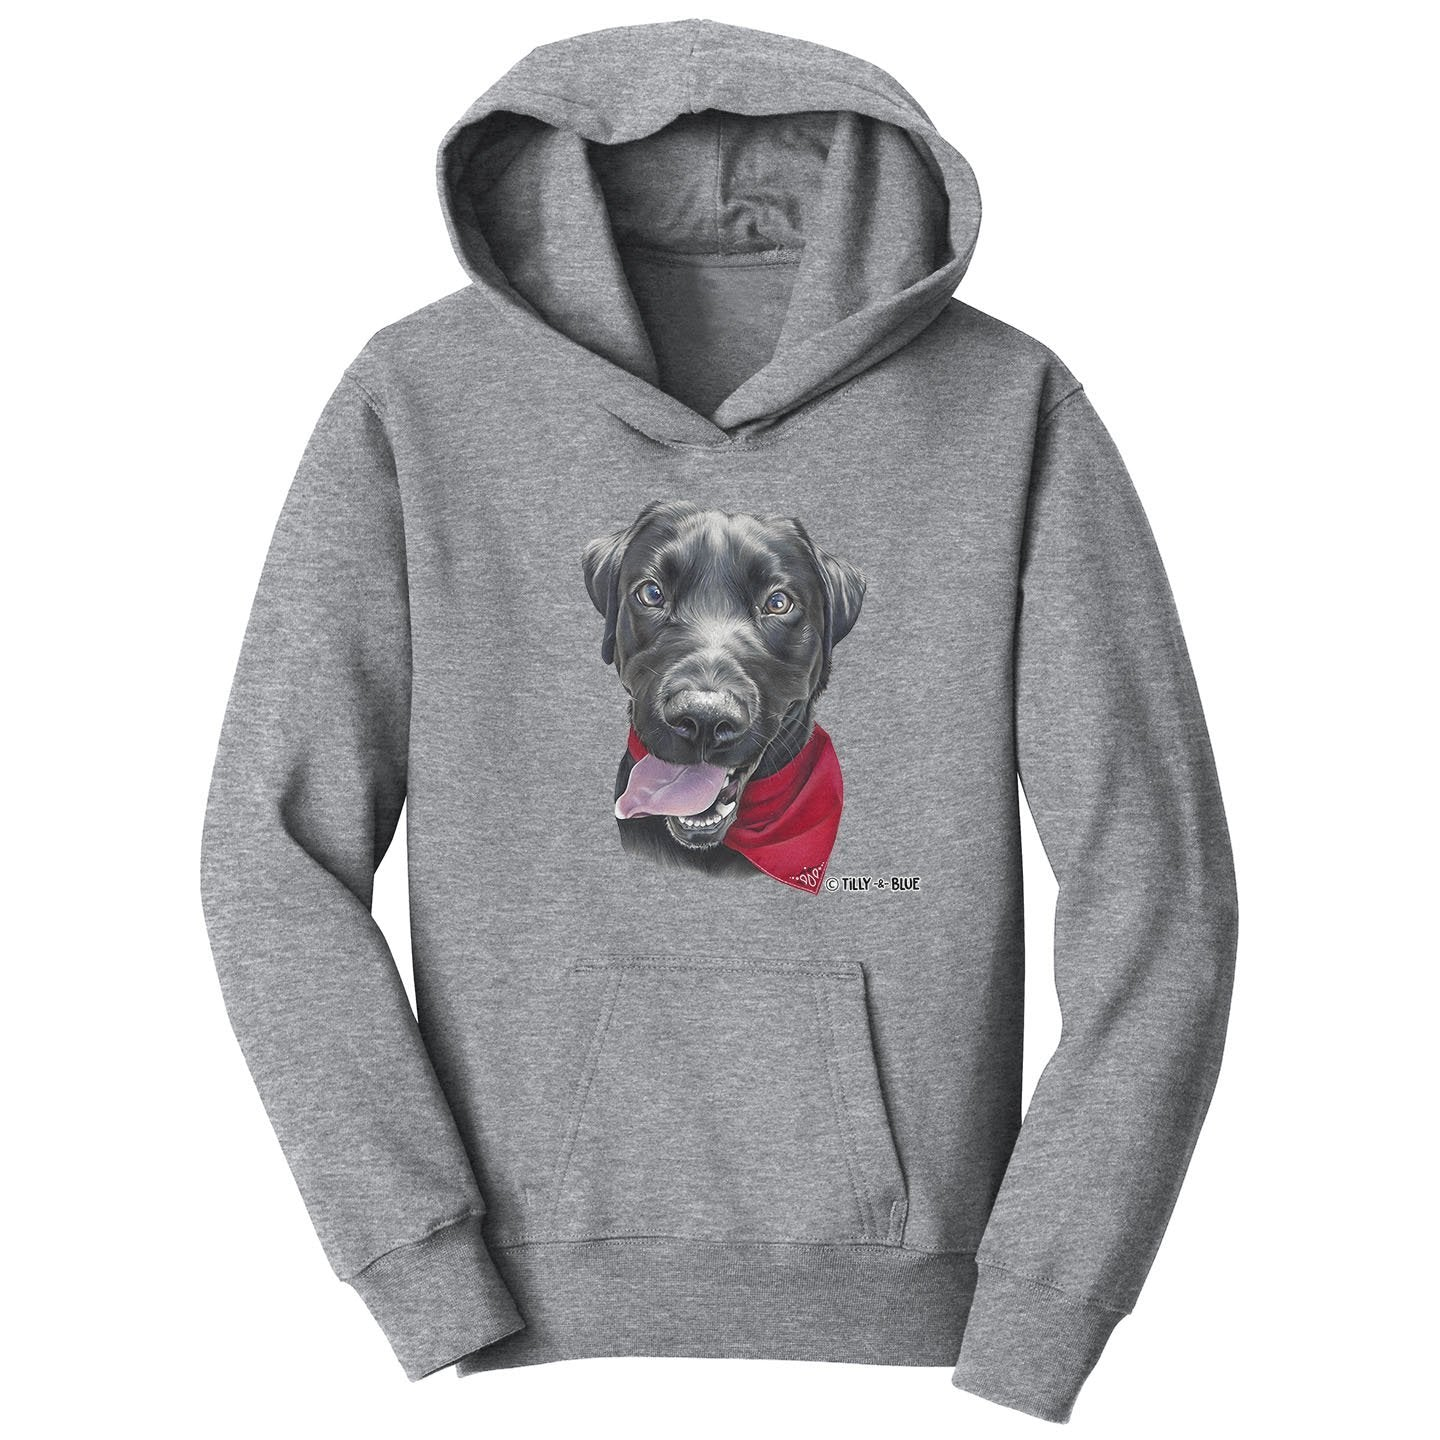 Black Lab With A Bandana - Kids' Unisex Hoodie Sweatshirt